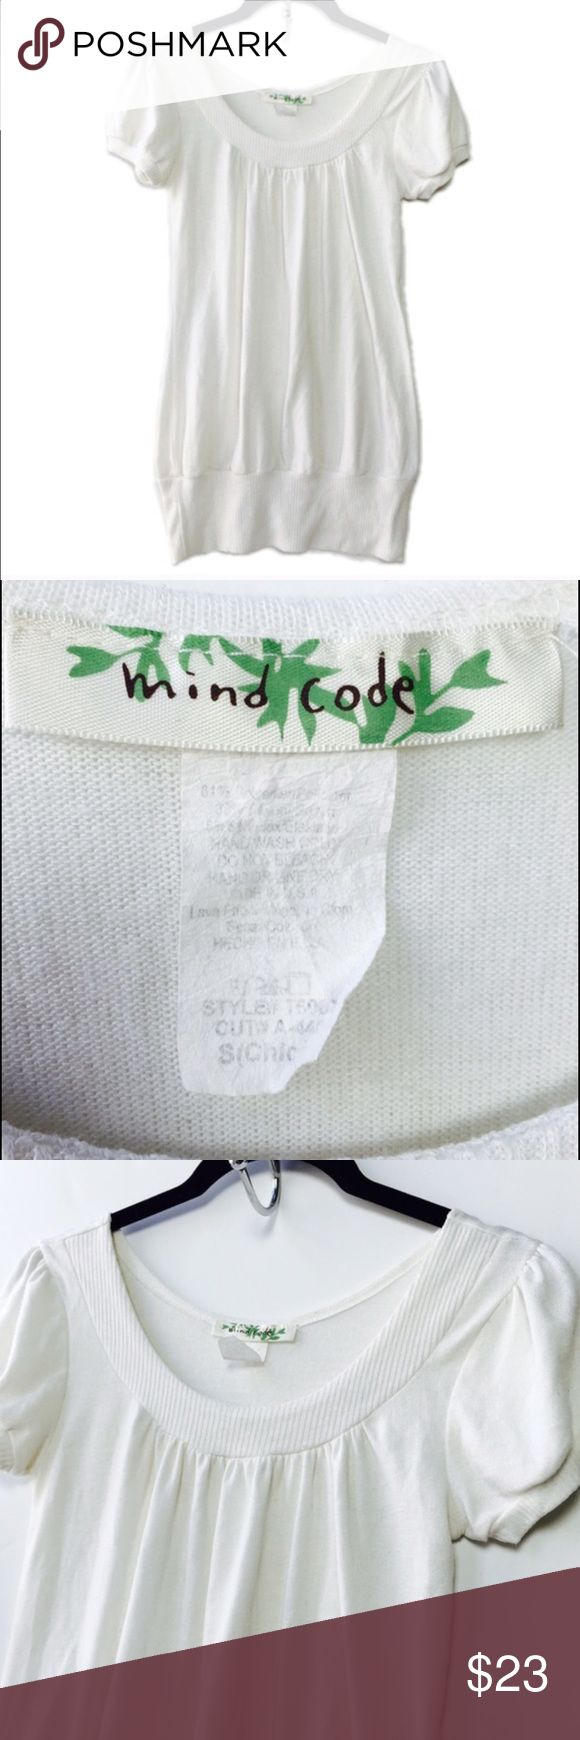 {{BLACK FRIDAY SALE}} White light knit short sleeve sweater from Mind Code. Sold at Urban Outfitters. Size Small.  No tears, holes, stains, fading or defects. Thanks for stopping by!! As always, all items are from a smoke-free and pet-free home  Thanks for shopping Reclaimed Treasure Resale ❤️ Urban Outfitters Tops